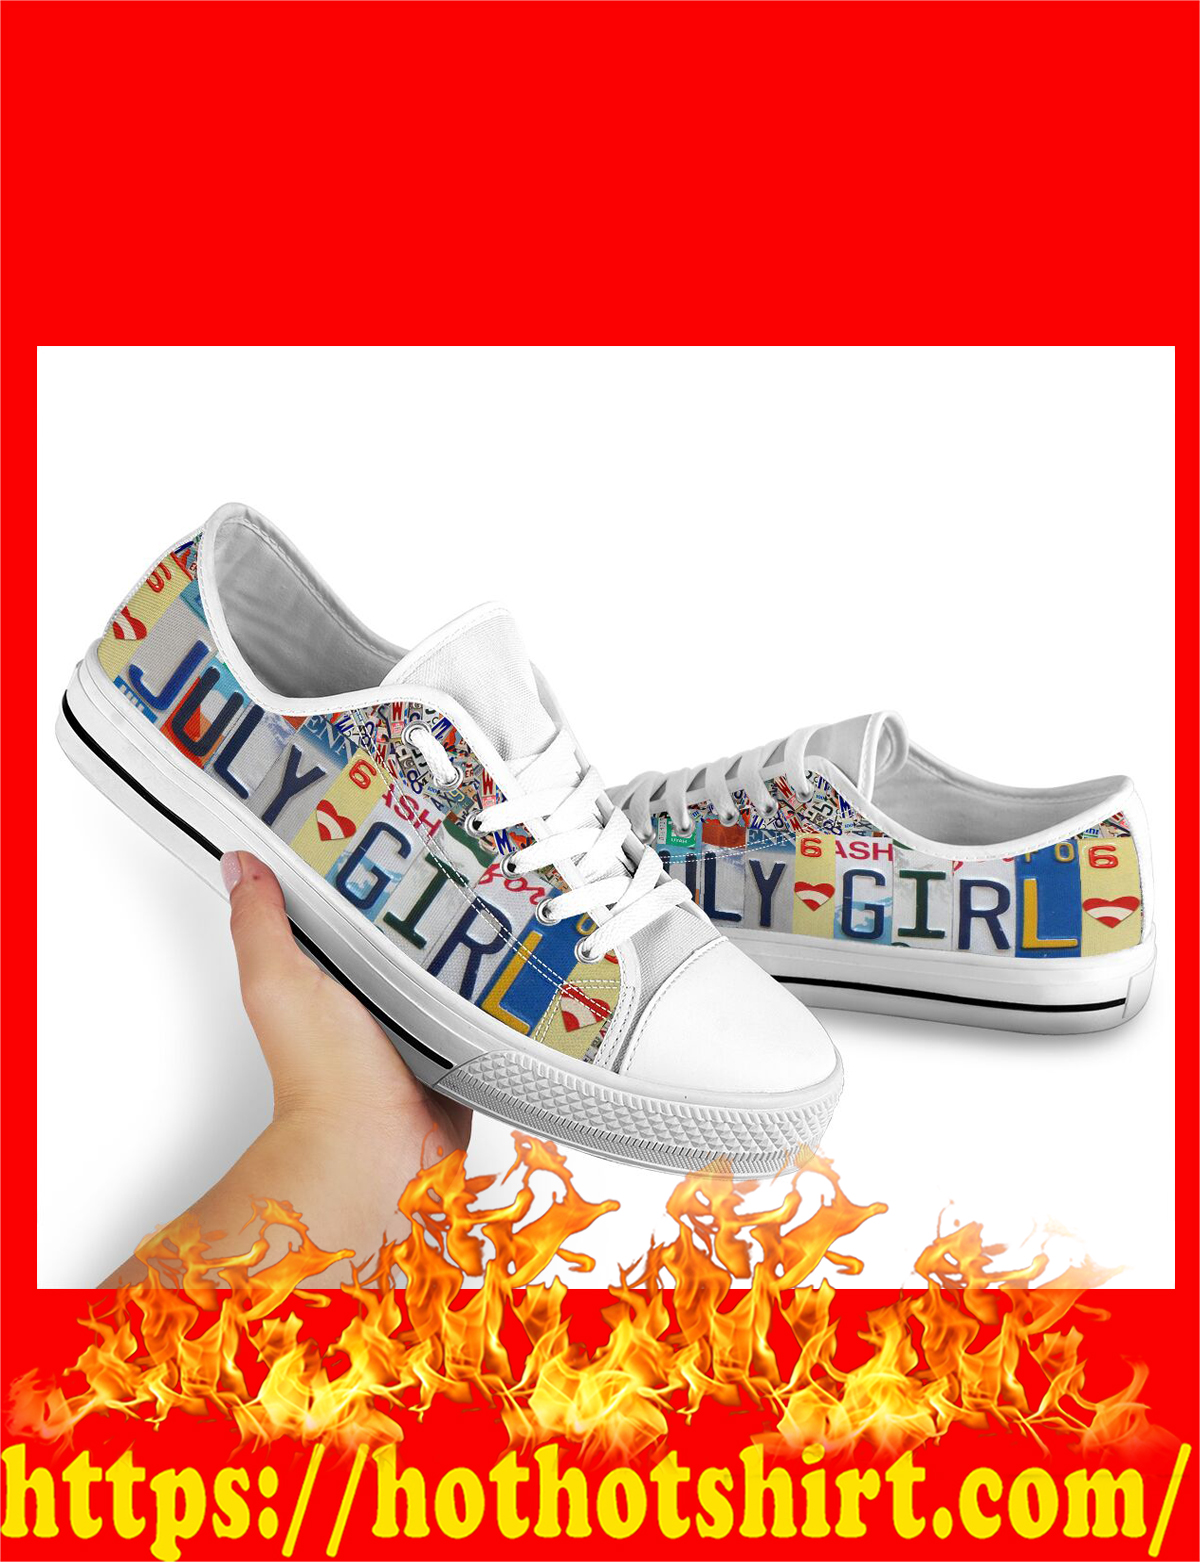 July girl low top shoes - pic 3